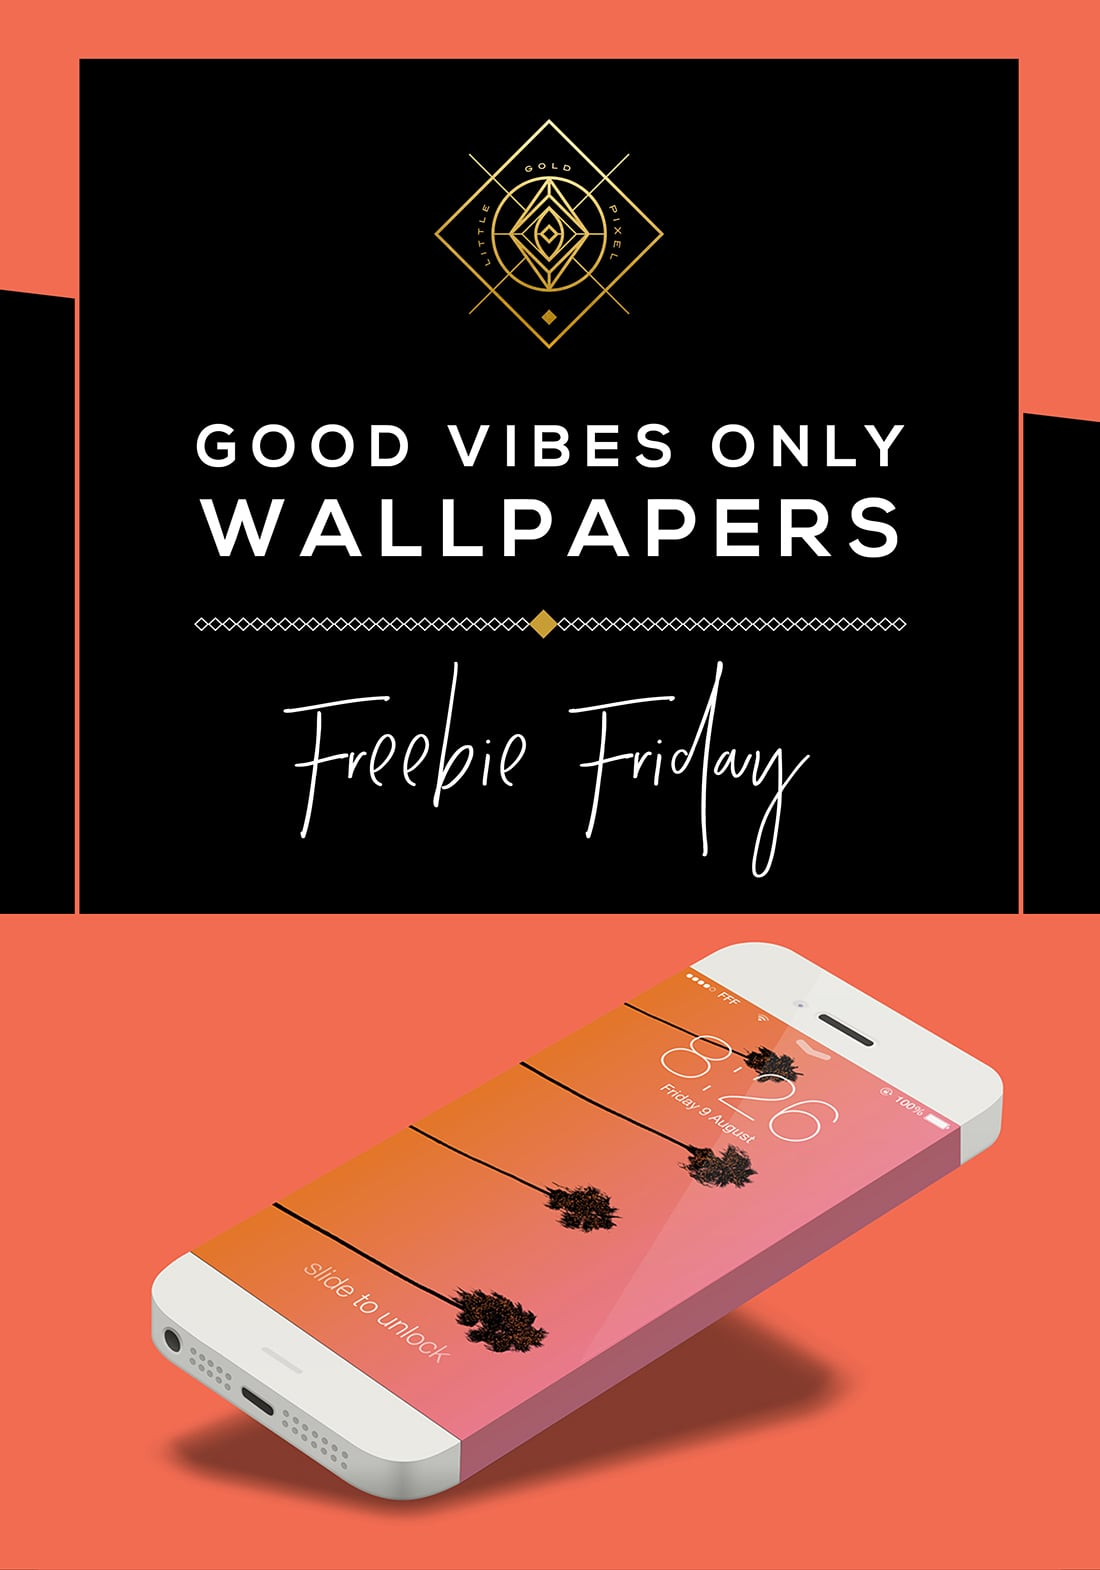 Good Vibes Only Free Wallpaper / Freebie Fridays • Little Gold Pixel